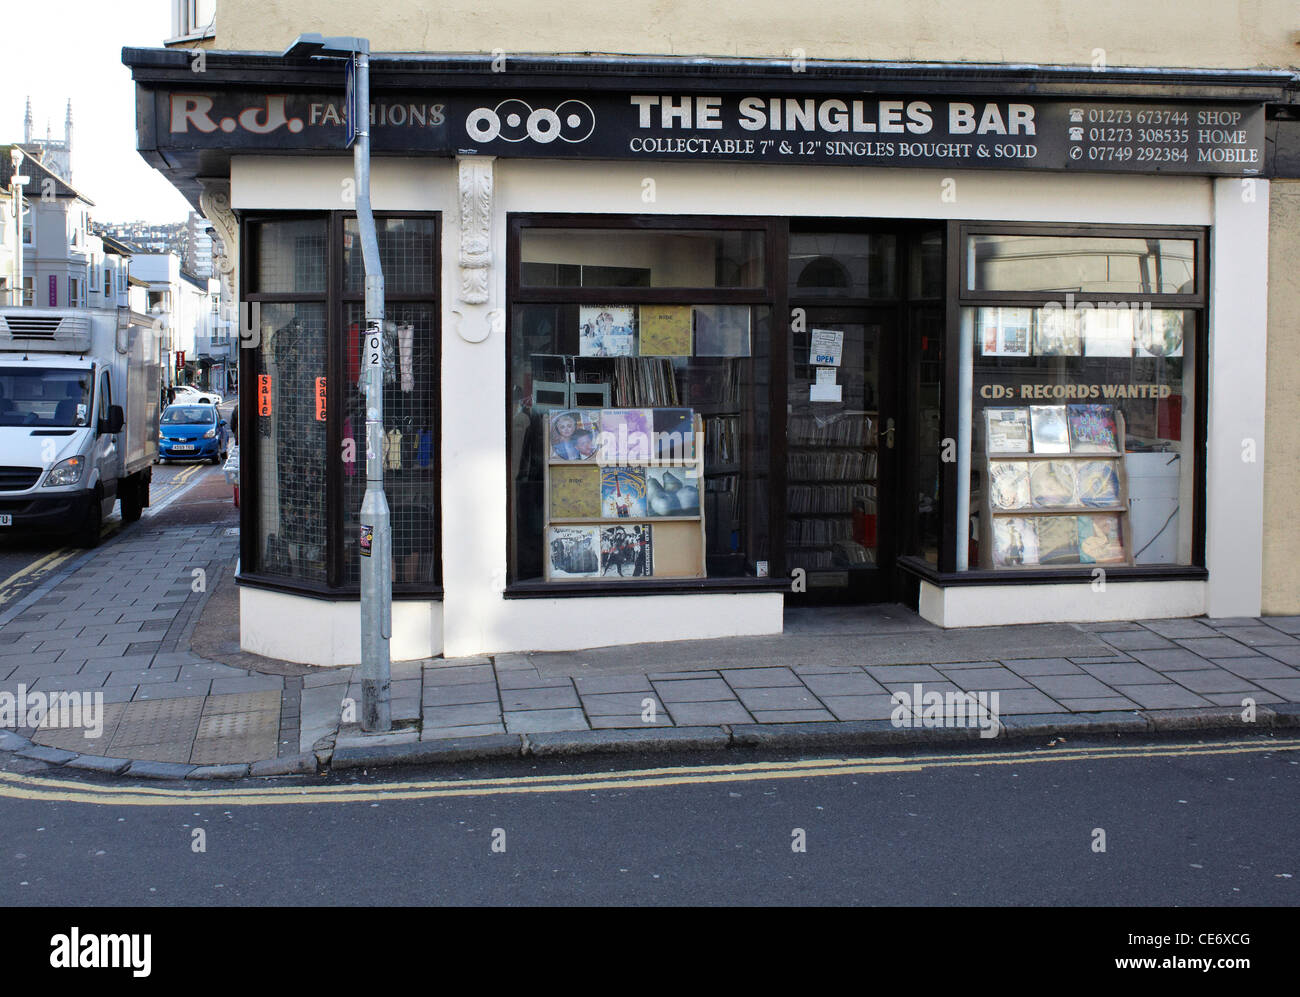 The Singles Bar Tidy Street Brighton - Stock Image